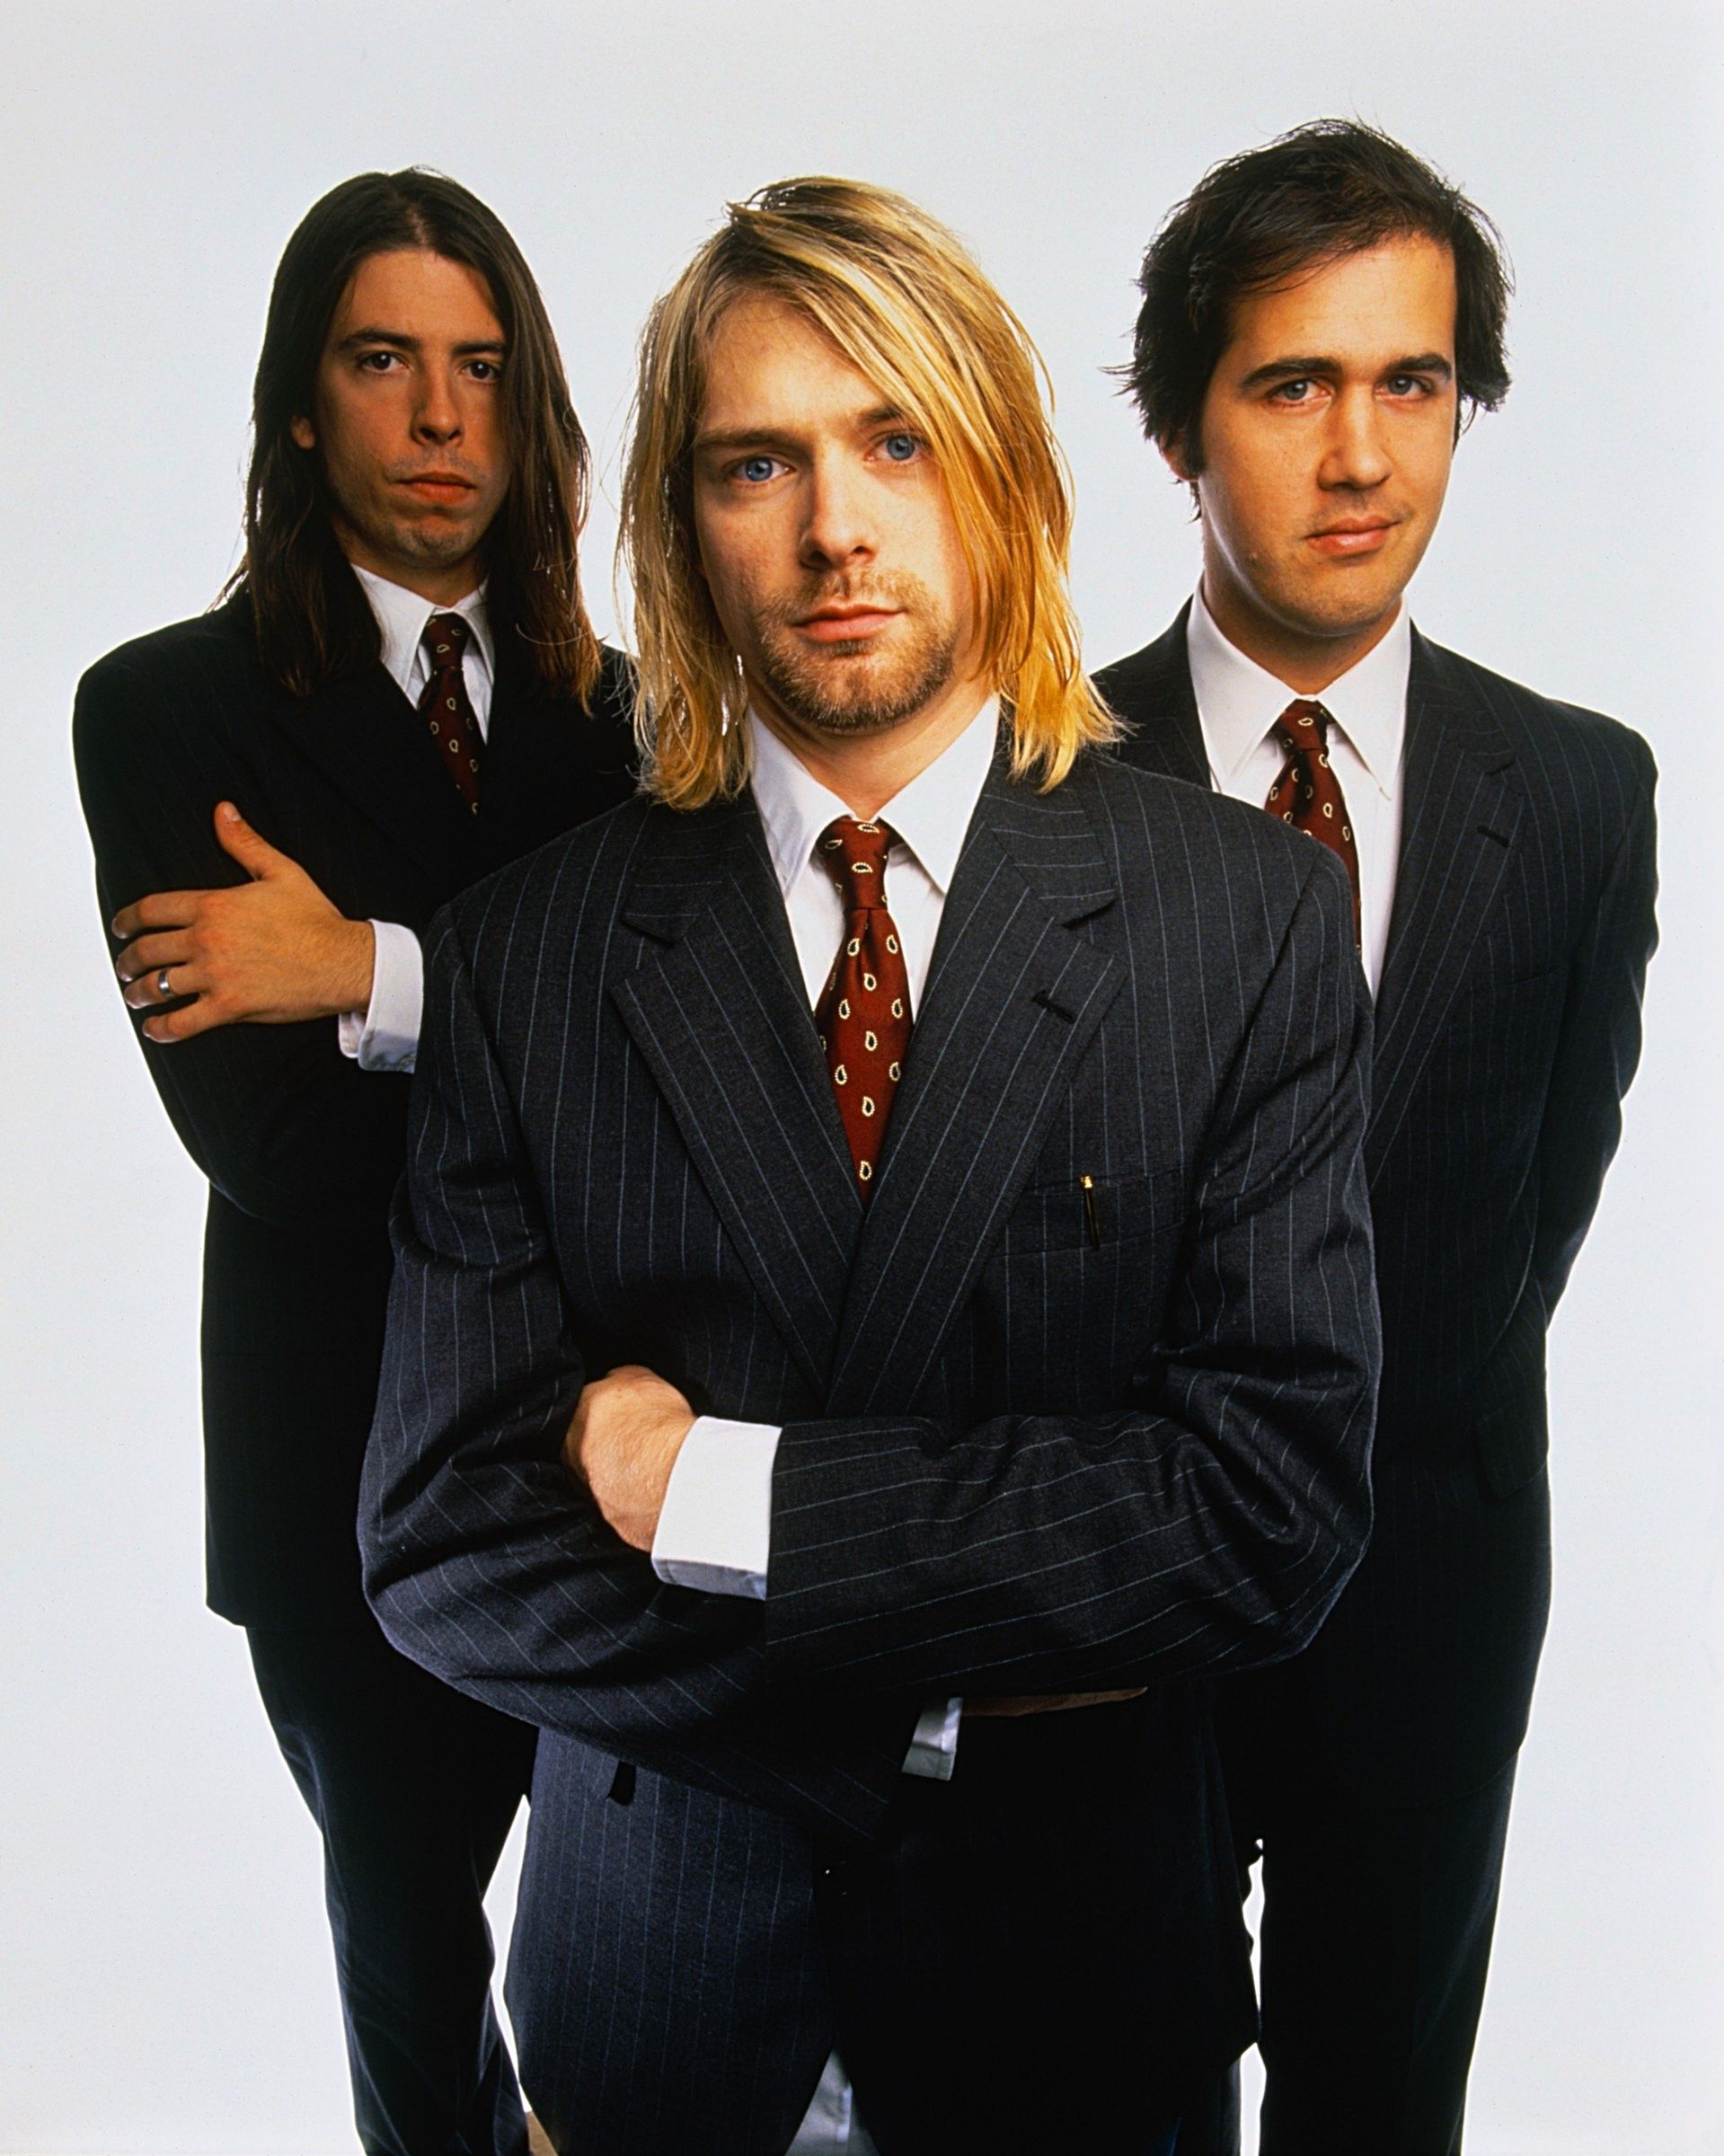 nirvana - Buscar con Google. Omg, Kurt was wearing jeans the whole fuckin time. Of course though, why would I expect him to wear the full suit, idk?